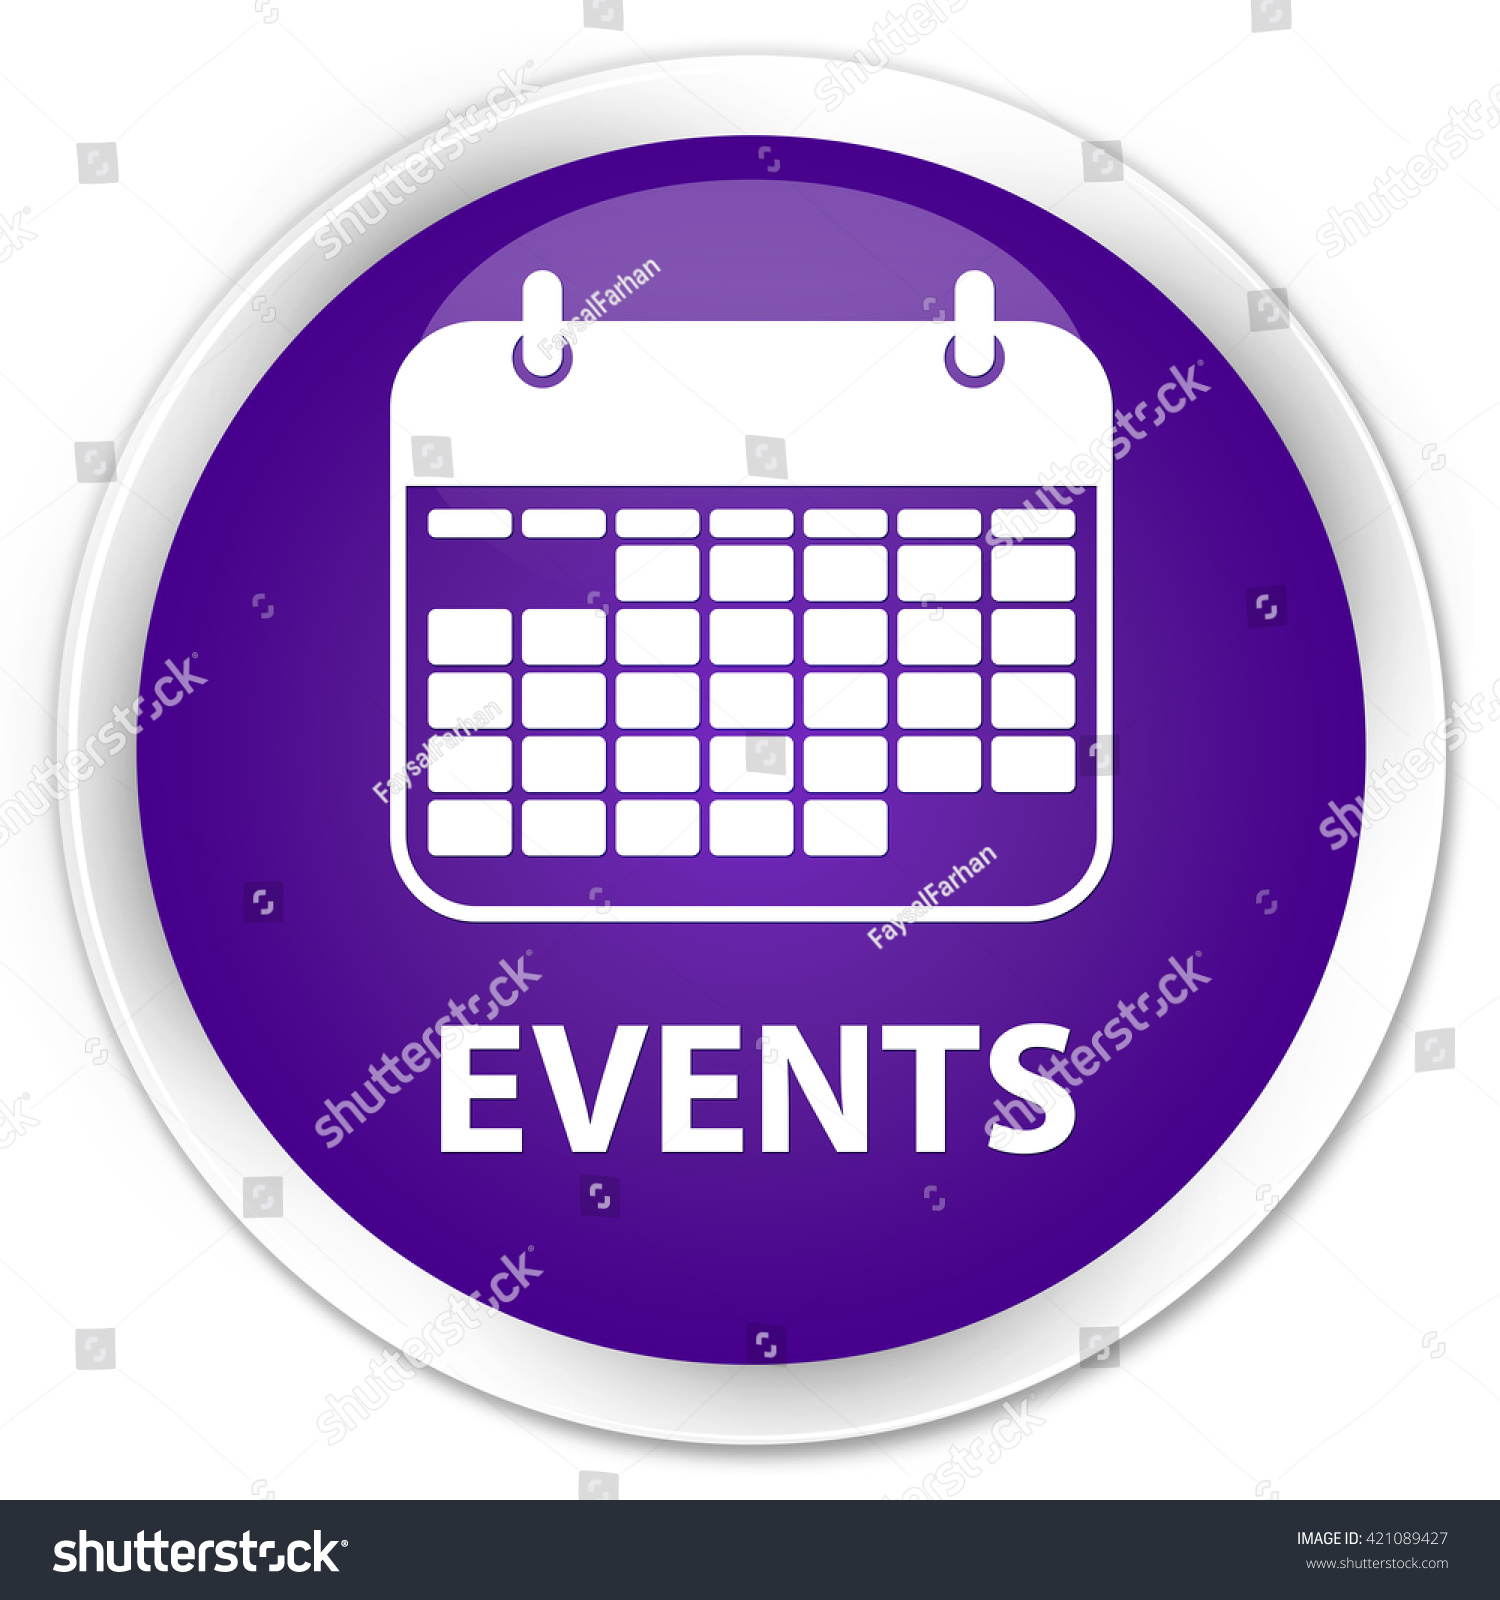 Event Calendar Illustration : Events calendar icon purple glossy round stock